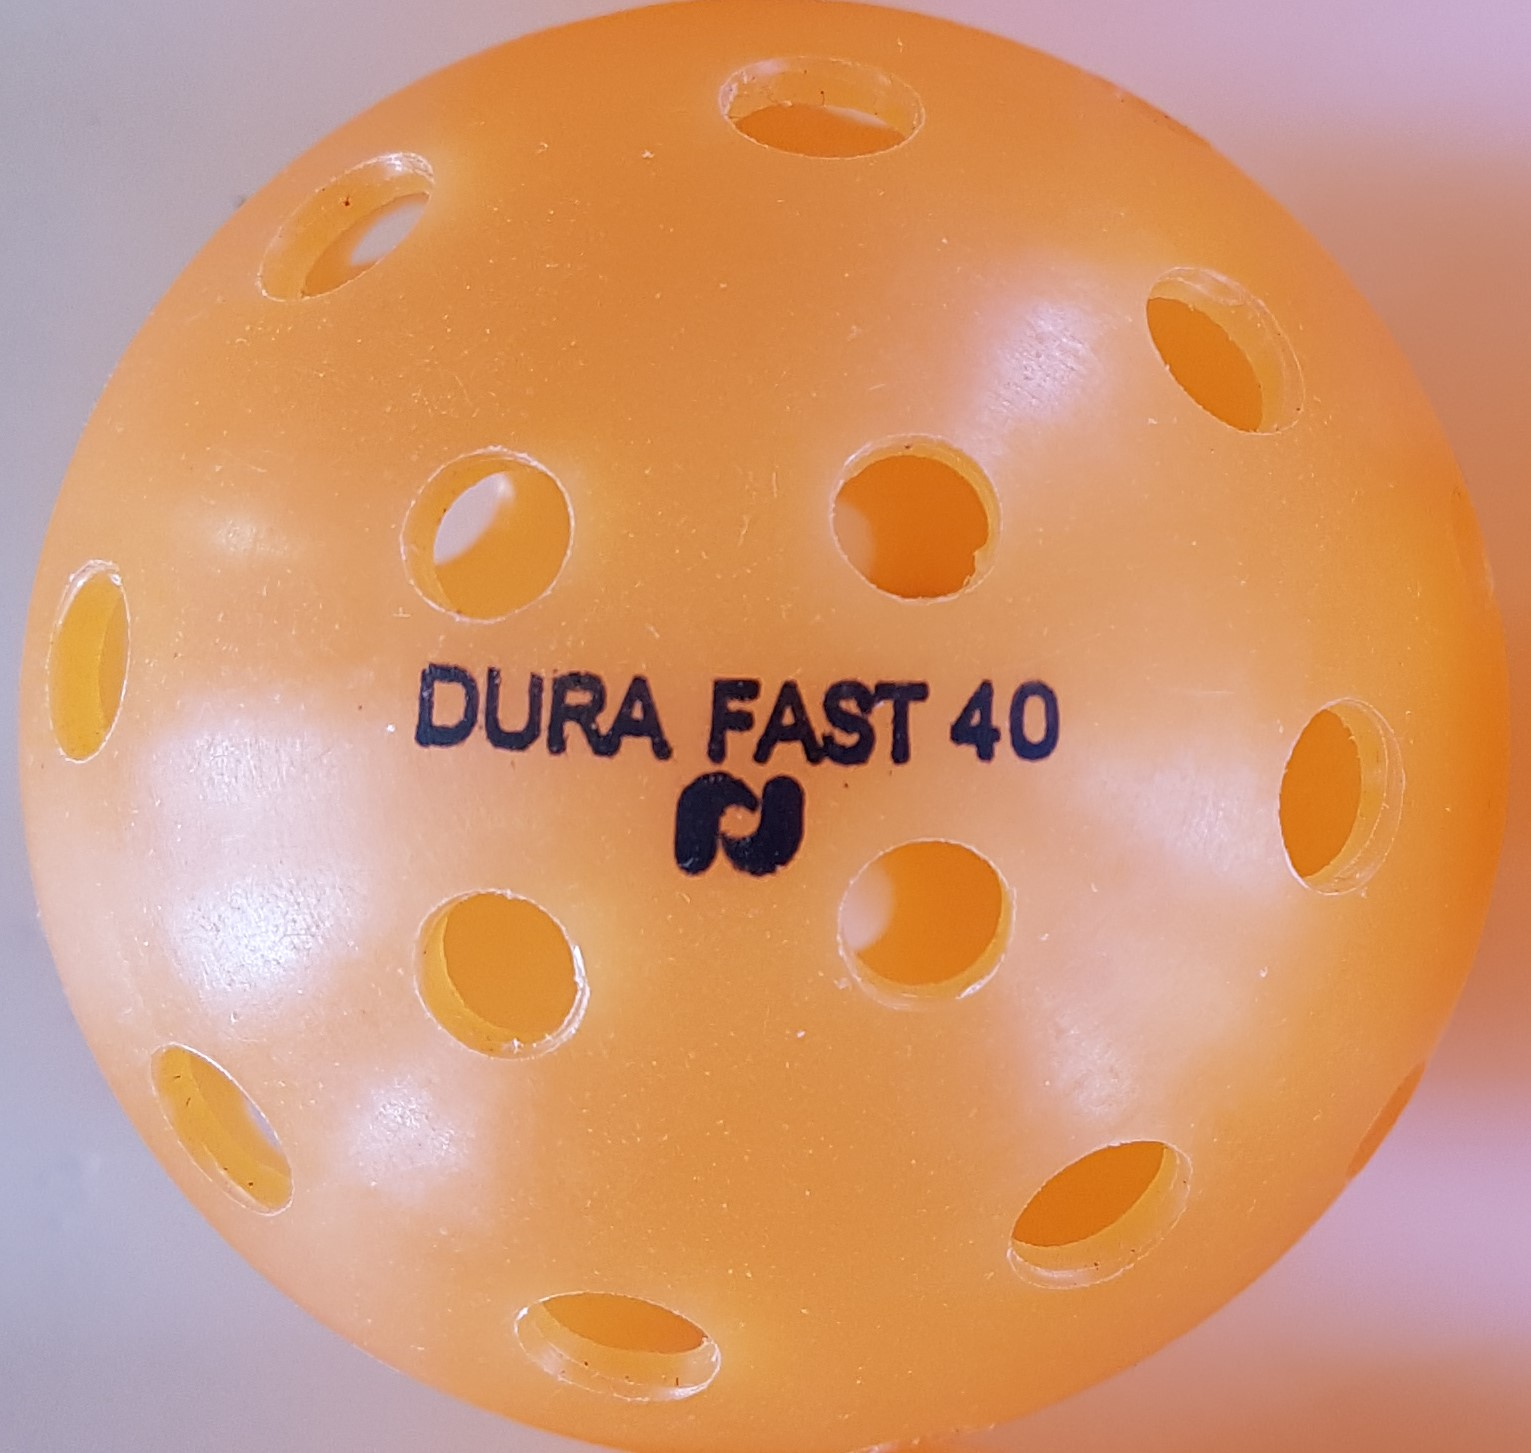 Dura Fast 40 - Outdoor Ball